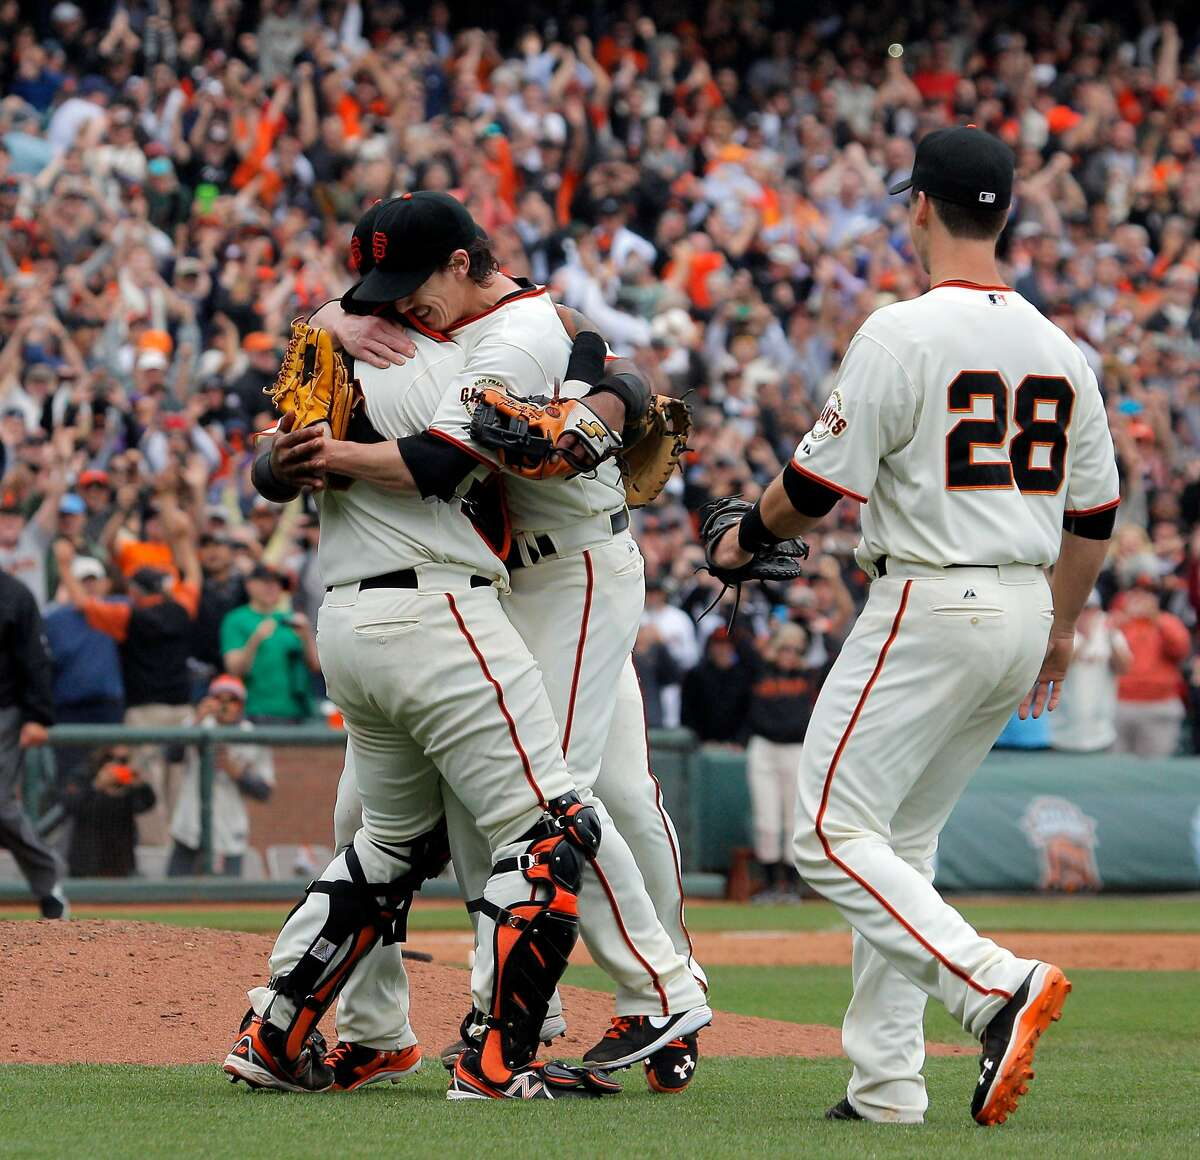 Pitcher Tim Lincecum, center, is mobbed by teammates after he pitched a no hitter as the San Francisco Giants played the San Diego Padres at AT&T Park in San Francisco, Calif., on Wednesday, June 25, 2014, defeating the Padres 4-0.